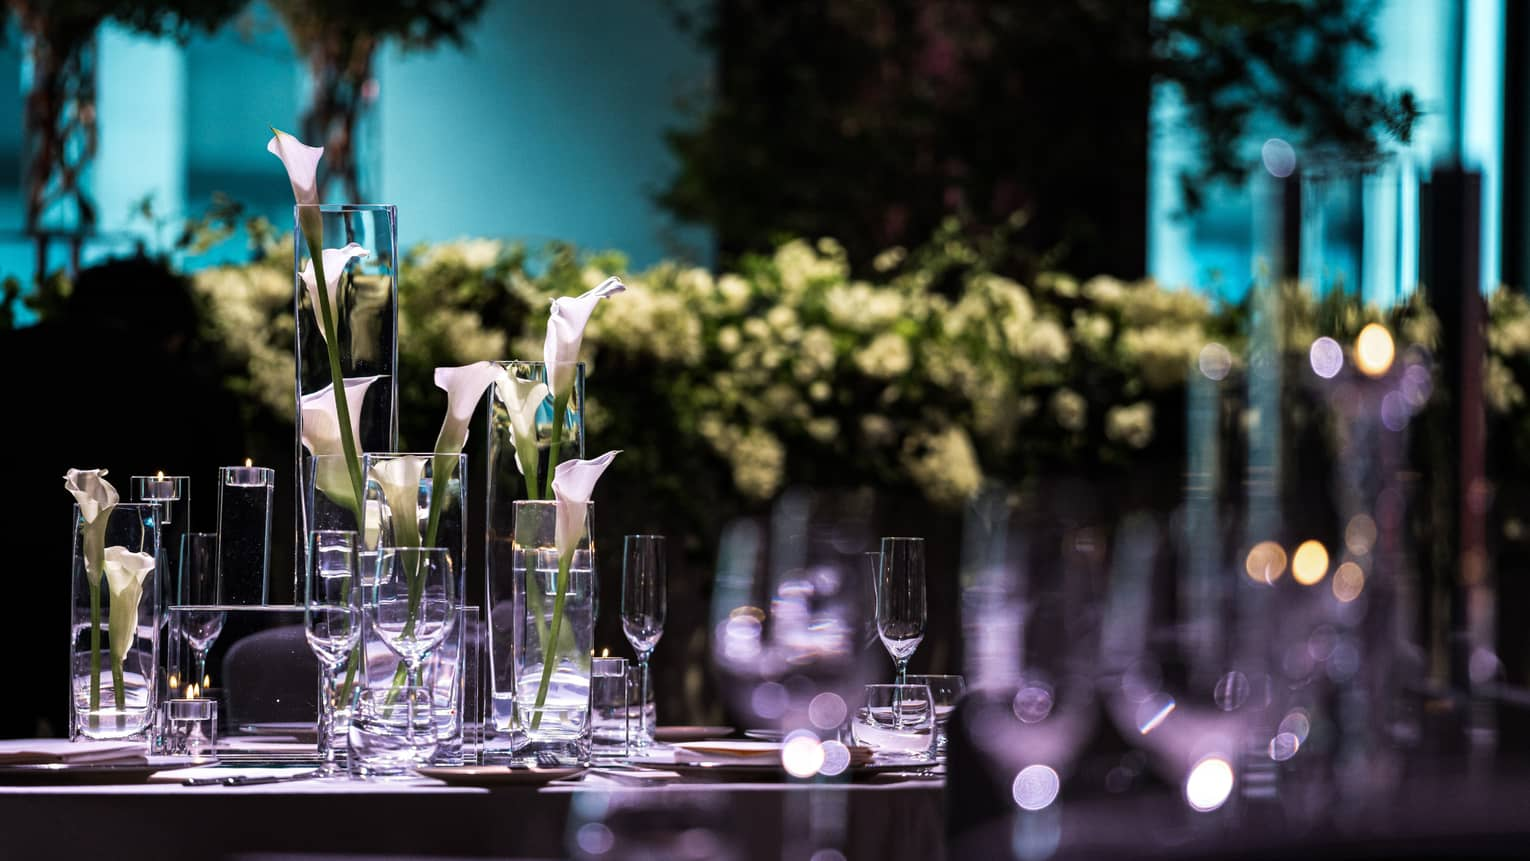 Long stemmed flowers in glass vases on table in event room with blue and purple lights